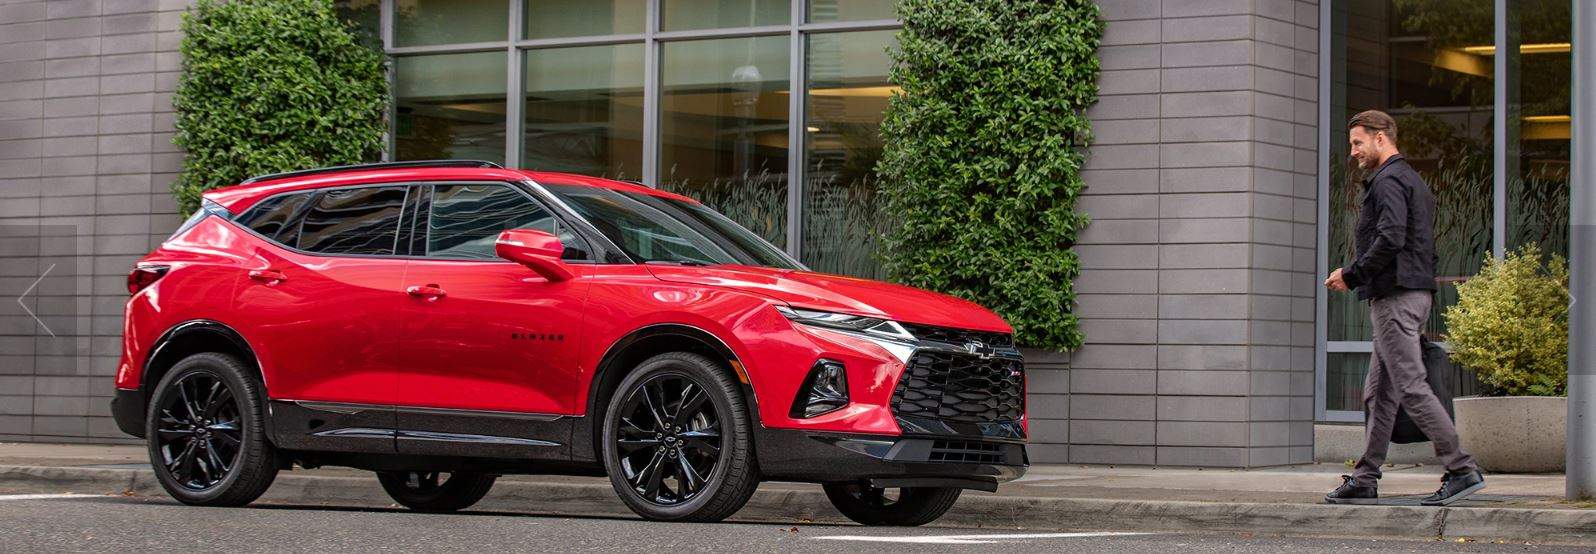 2020 Chevrolet Blazer Leasing near Brookings, SD